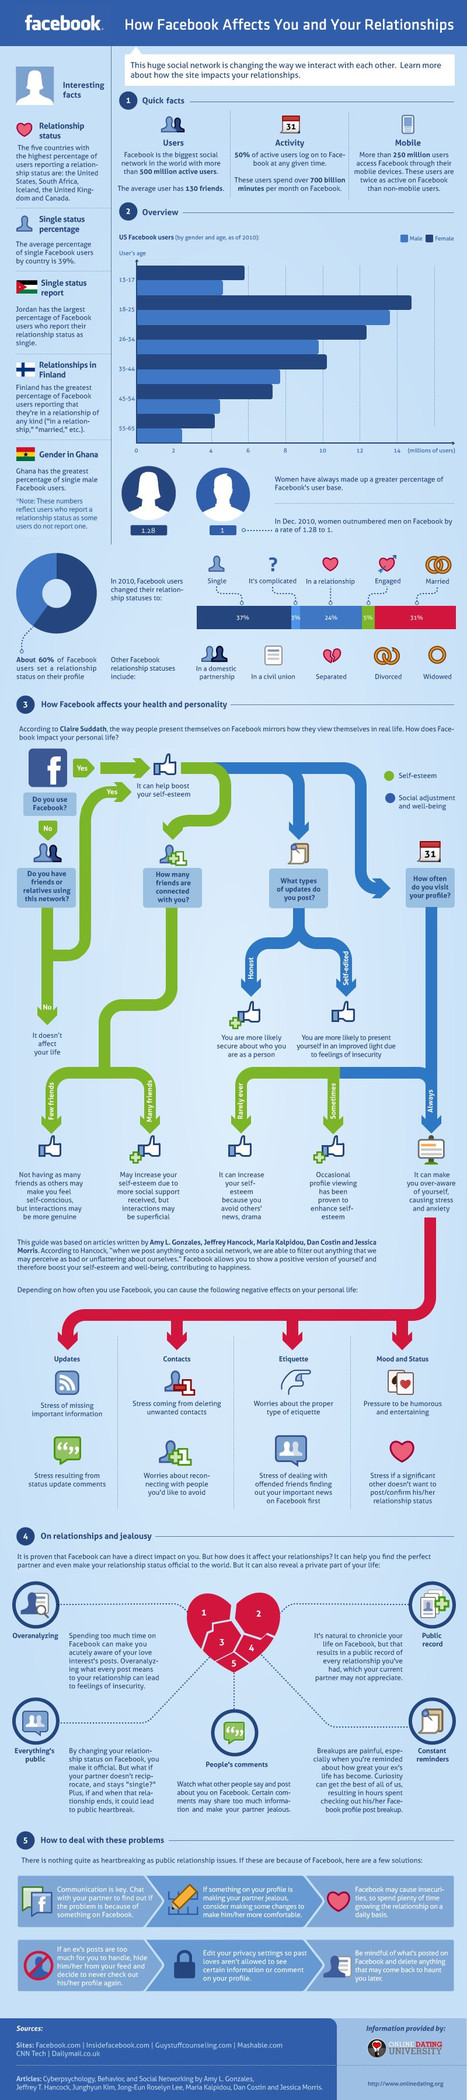 Facebook & Relationships: How It Affects You [Infographic] | Tracking Transmedia | Scoop.it